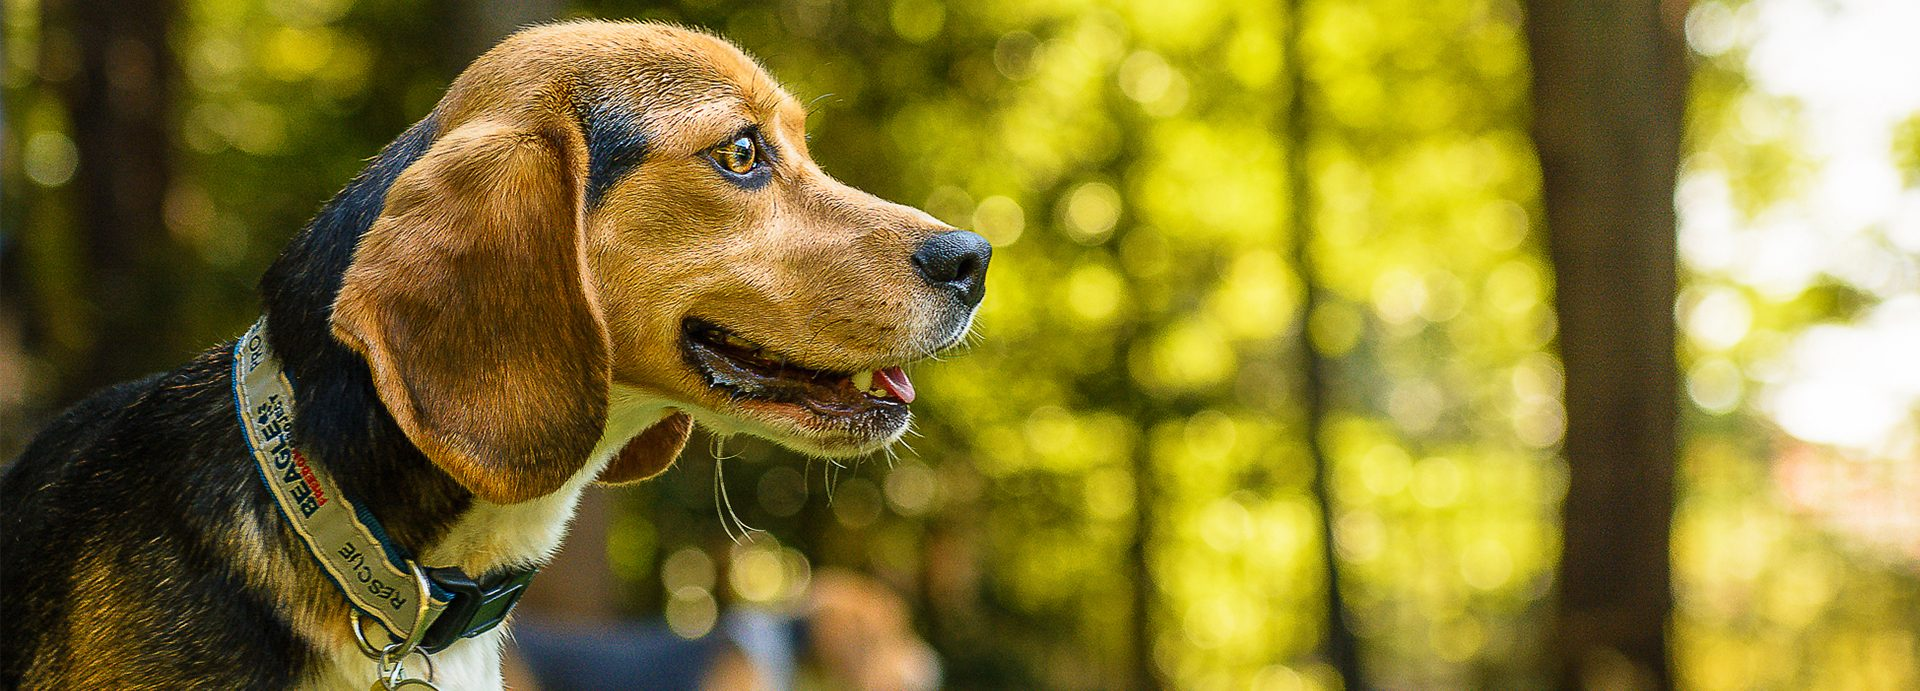 Maryland Passes 'Beagle Freedom Bill' to Help Research Dogs Get Adopted